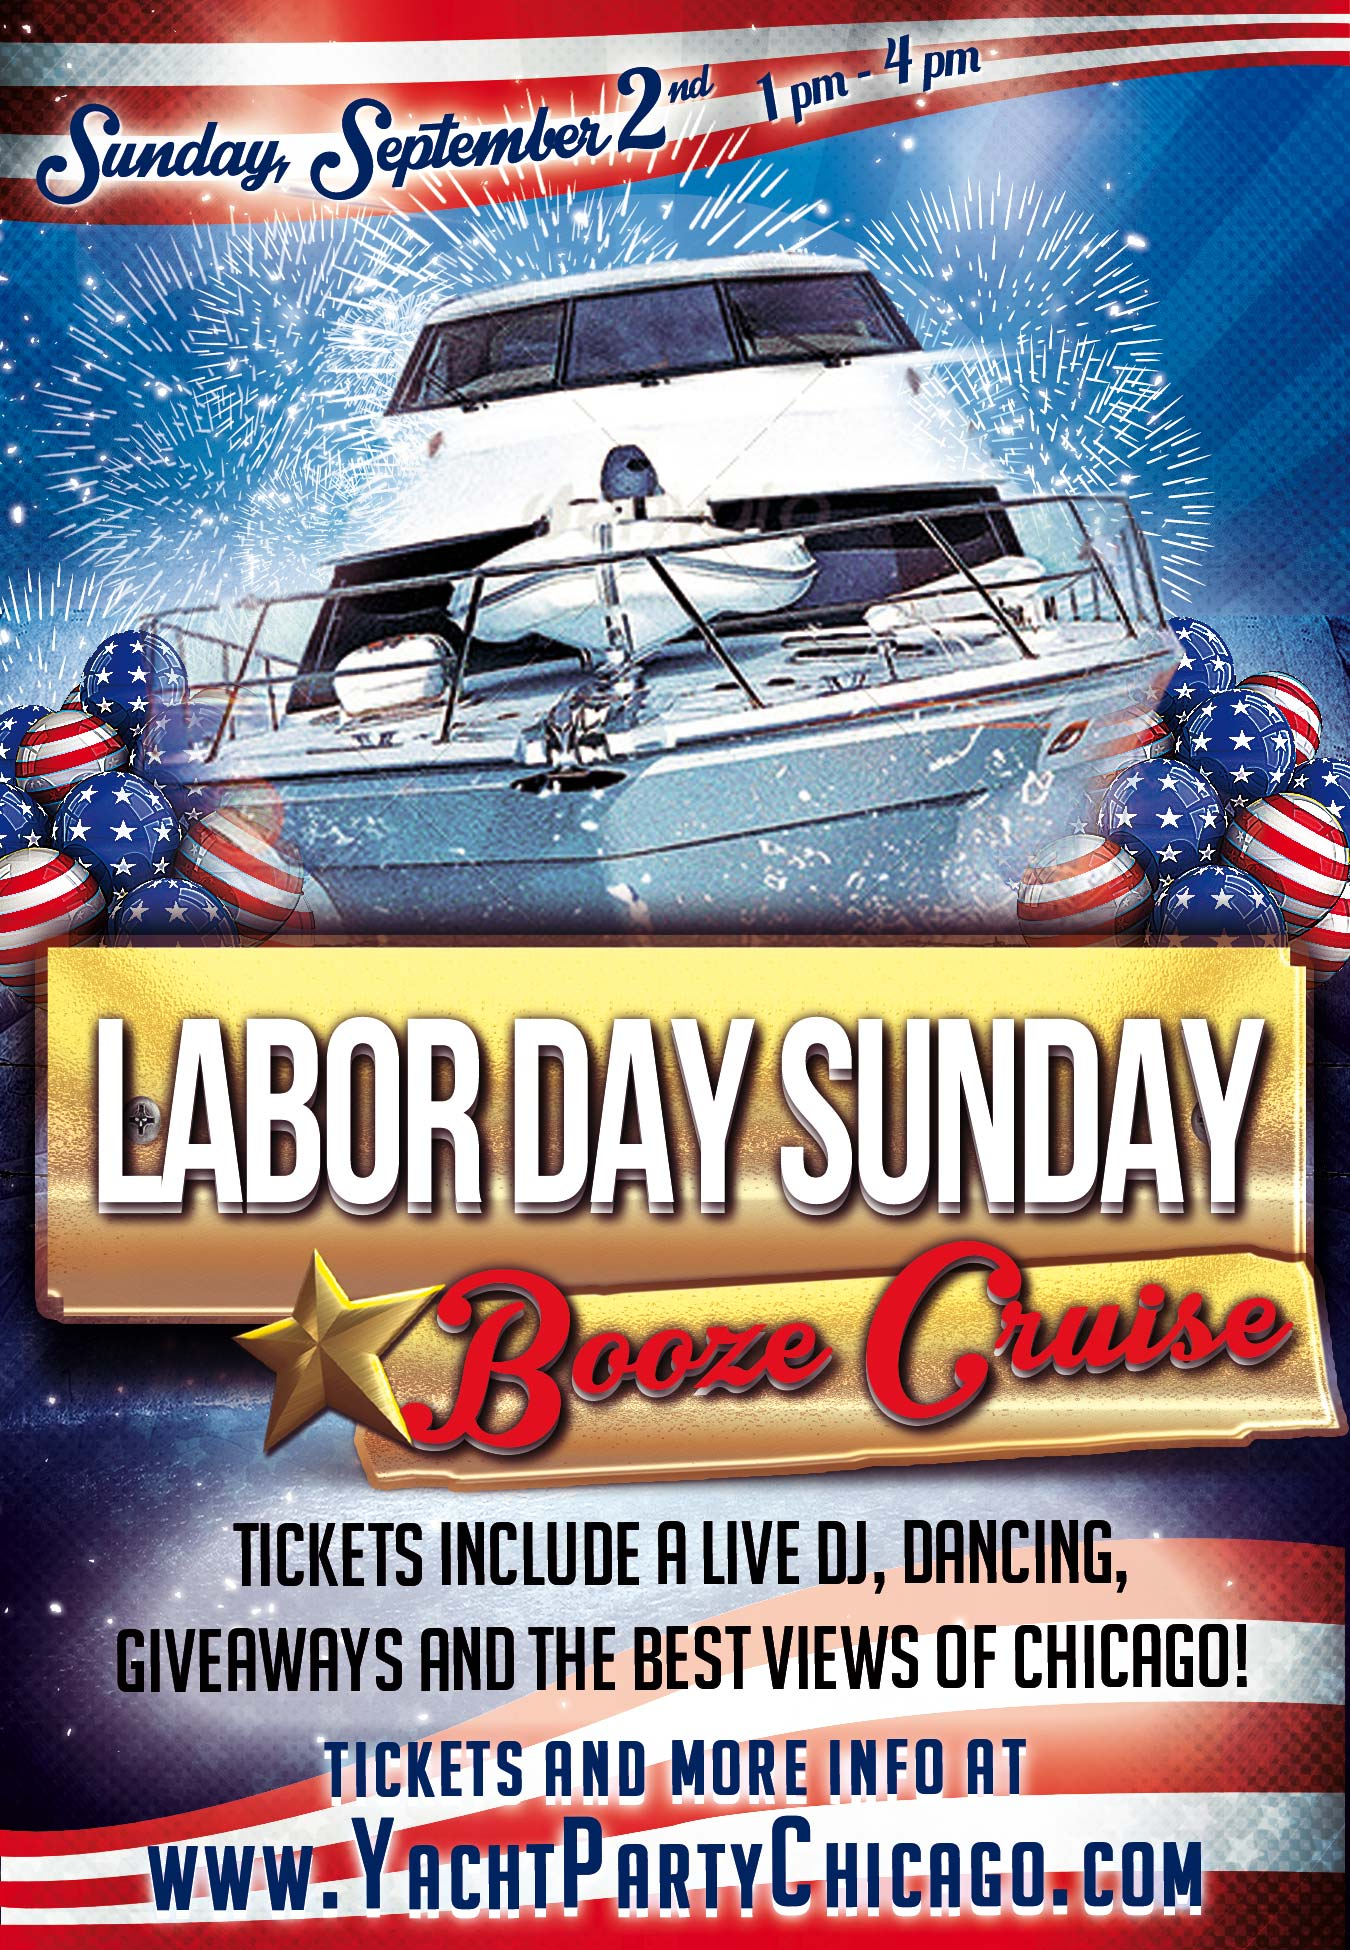 Labor Day Sunday Booze Cruise Party - Tickets include a Live DJ, Dancing, Giveaways, and the best views of Chicago!